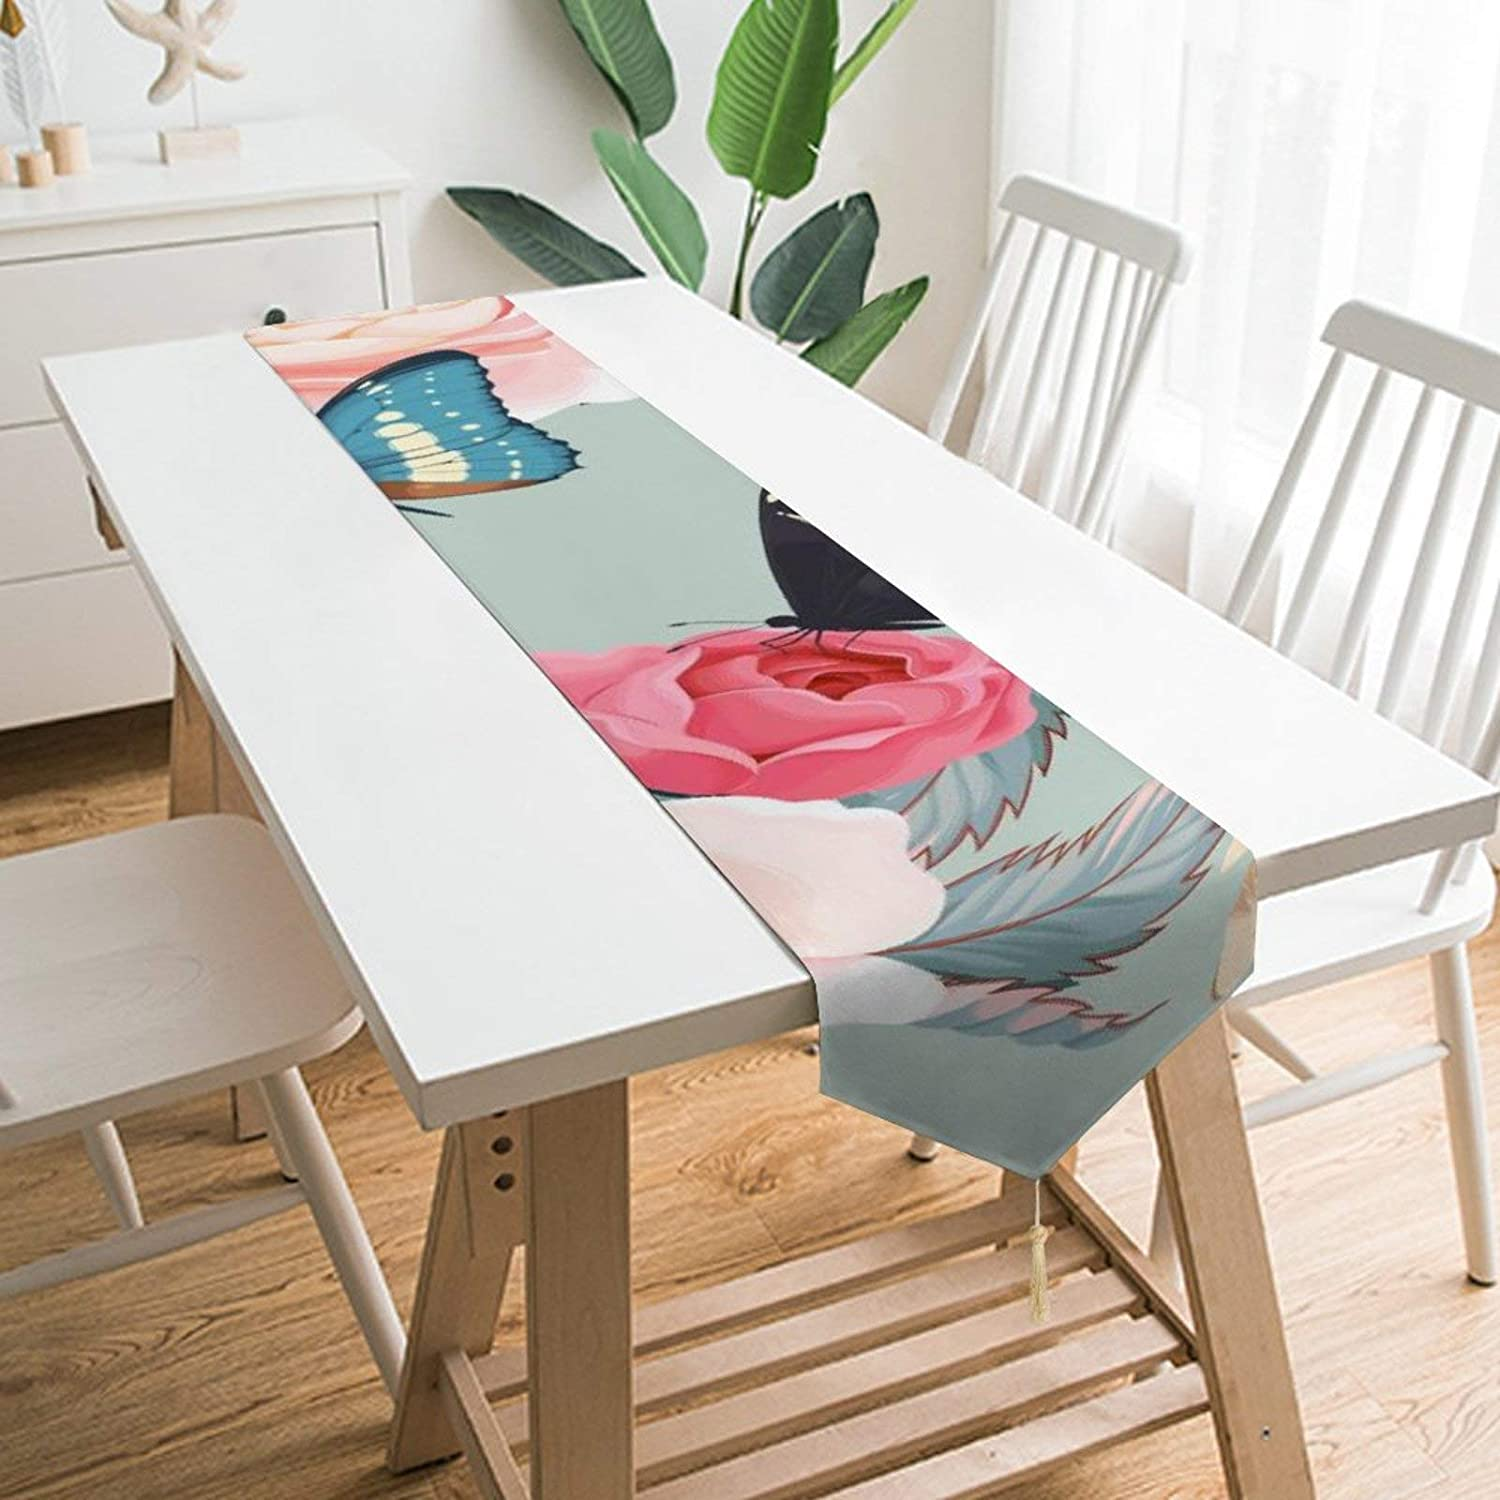 D-WOLVES Table Runners Dresser Scarves Machine Washable Heat Resistant Elegant Decor for Indoor & Outdoor Events Everyday Use Roses and Butterflies